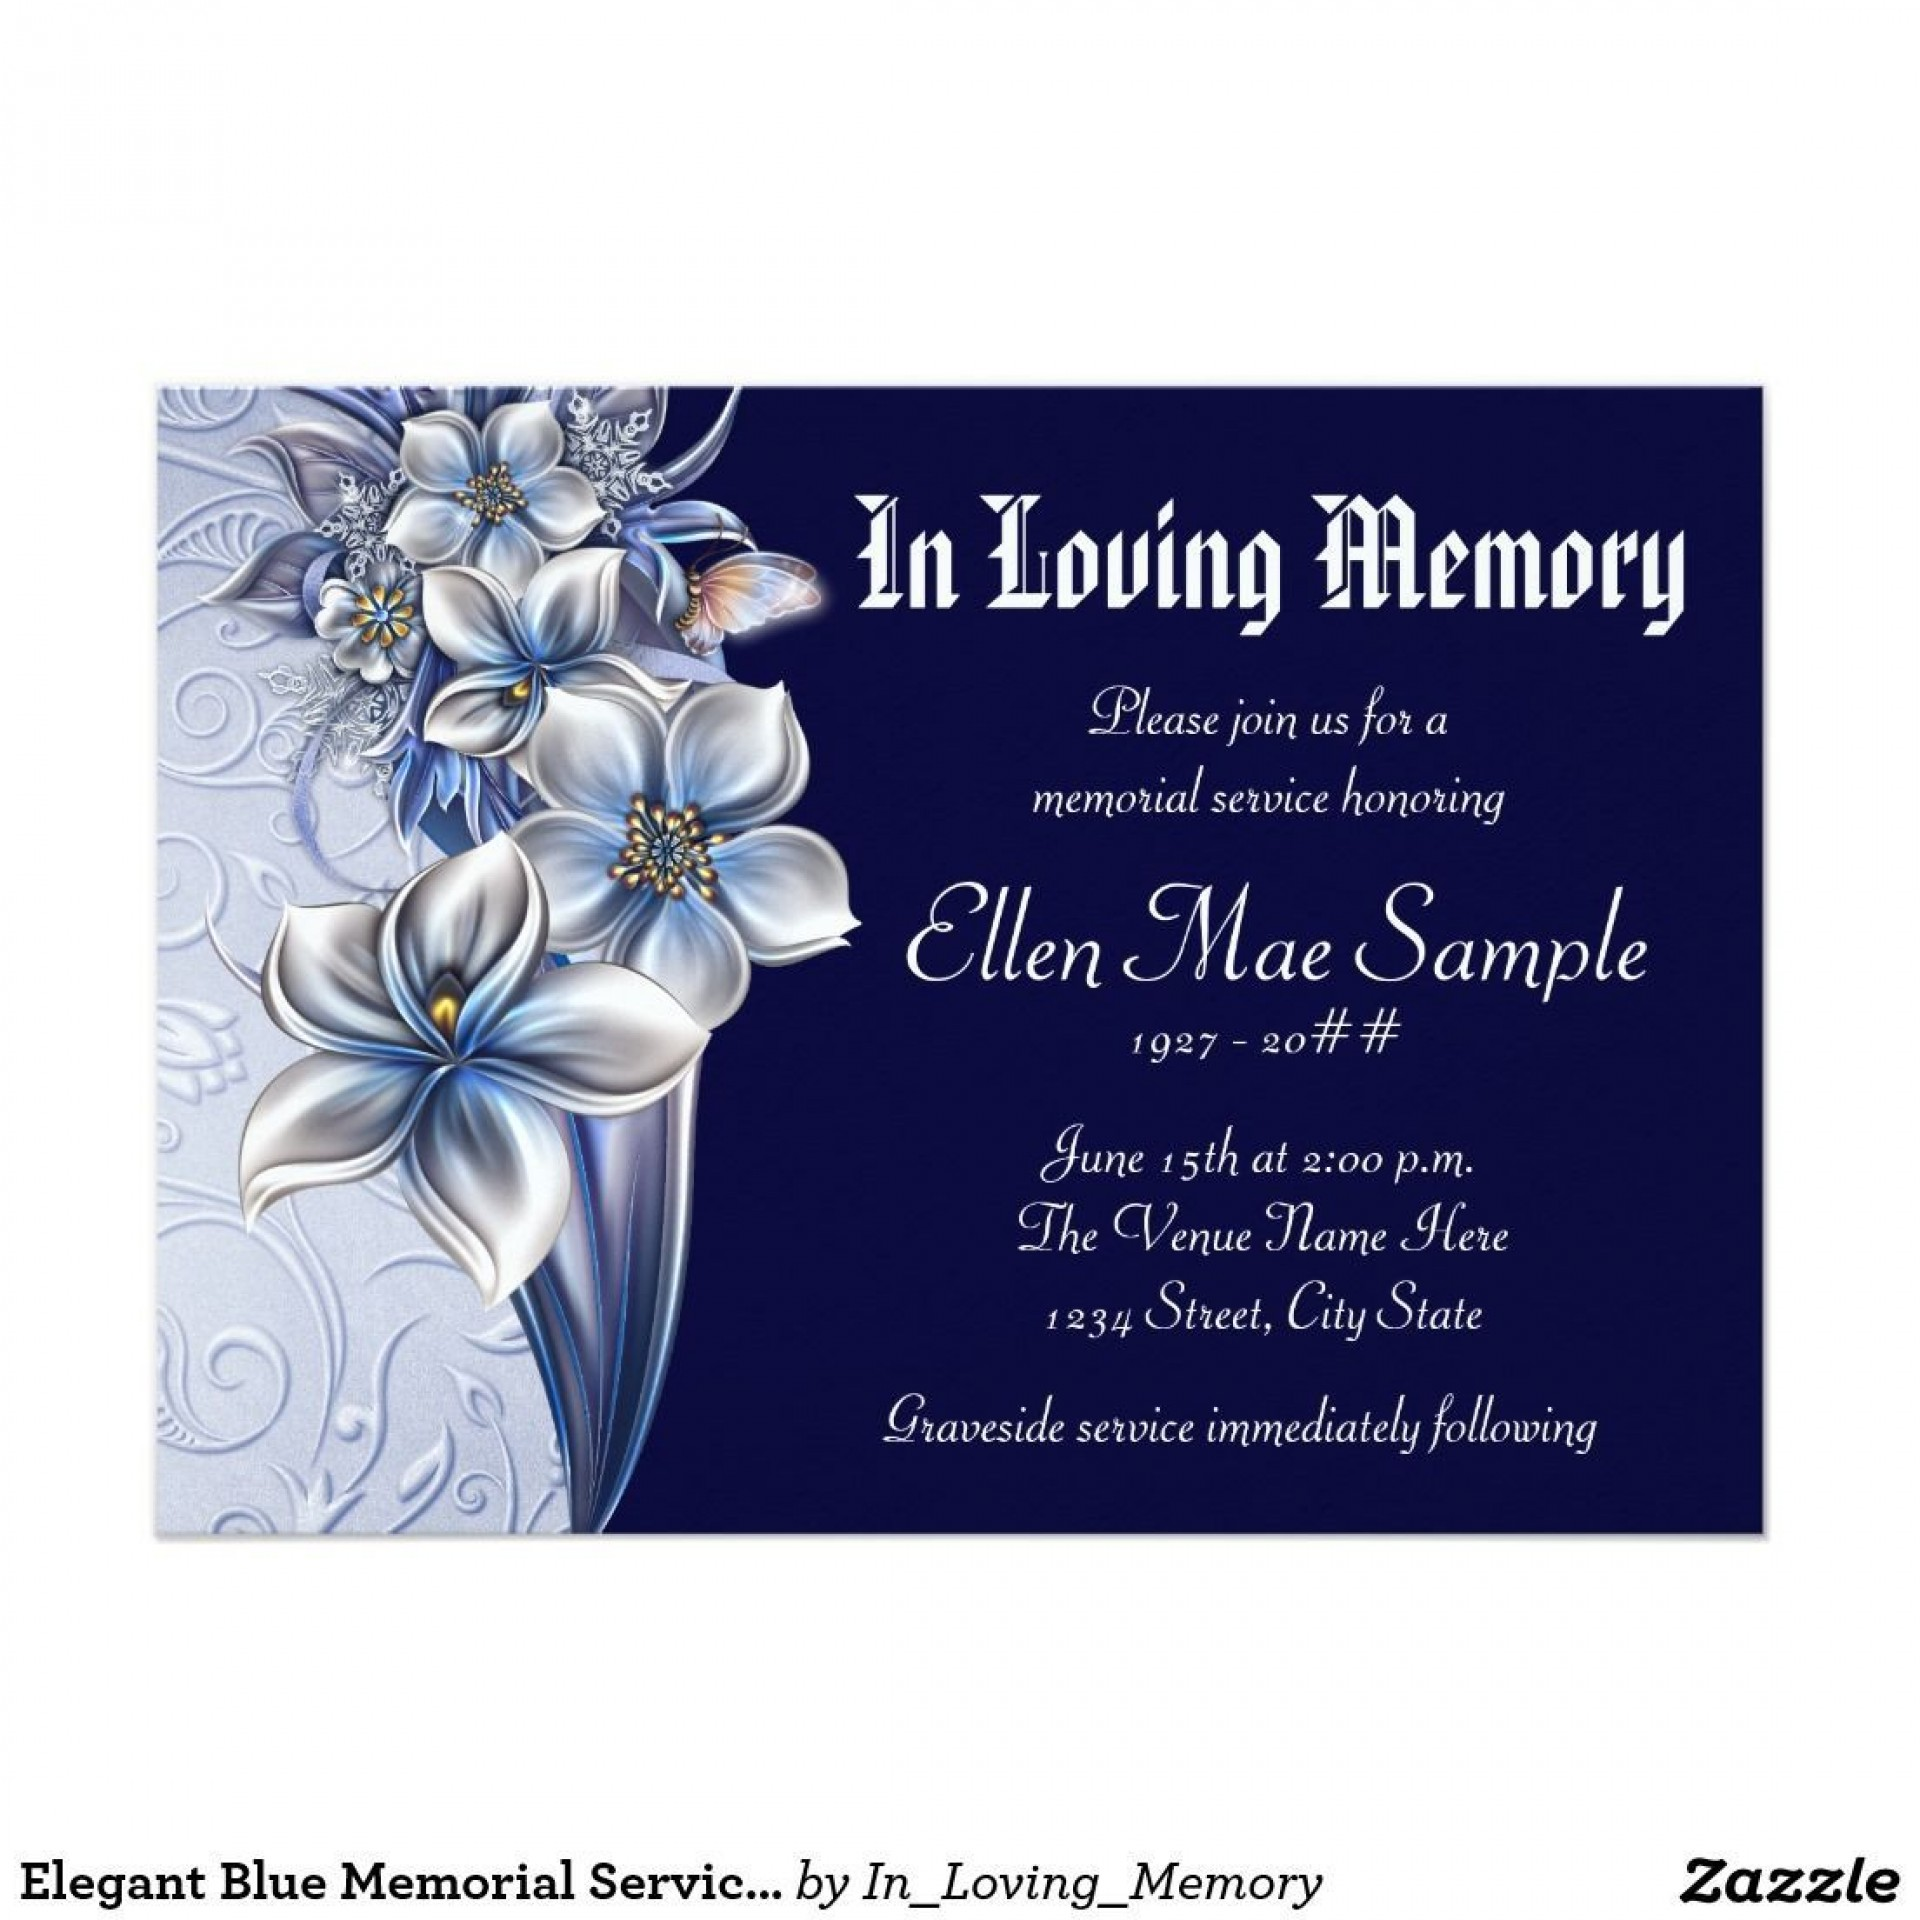 008 Amazing Funeral Invitation Template Free High Def  Memorial Service Card Reception1920